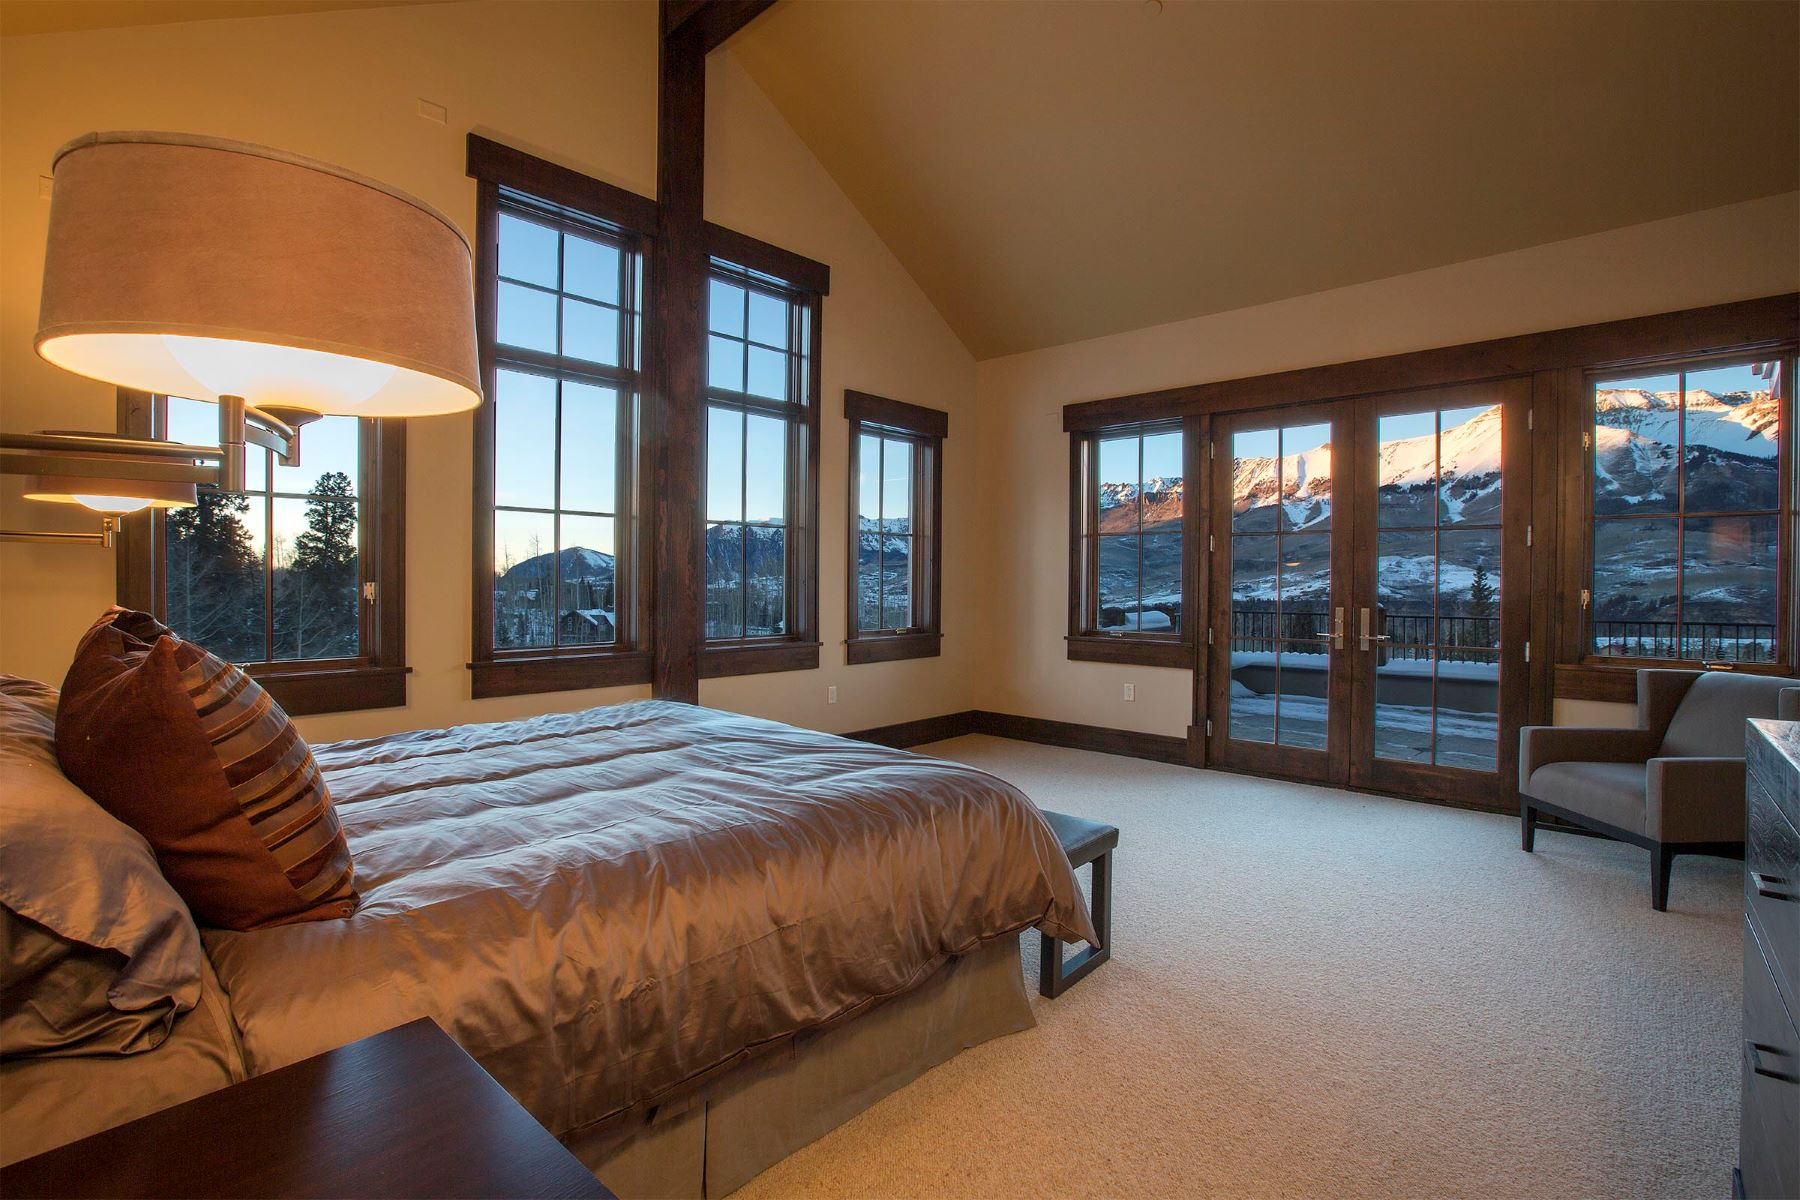 Condominium for Sale at Elkstone 21, Unit 401 500 Mountain Village Blvd, Unit 401 Mountain Village, Telluride, Colorado, 81435 United States